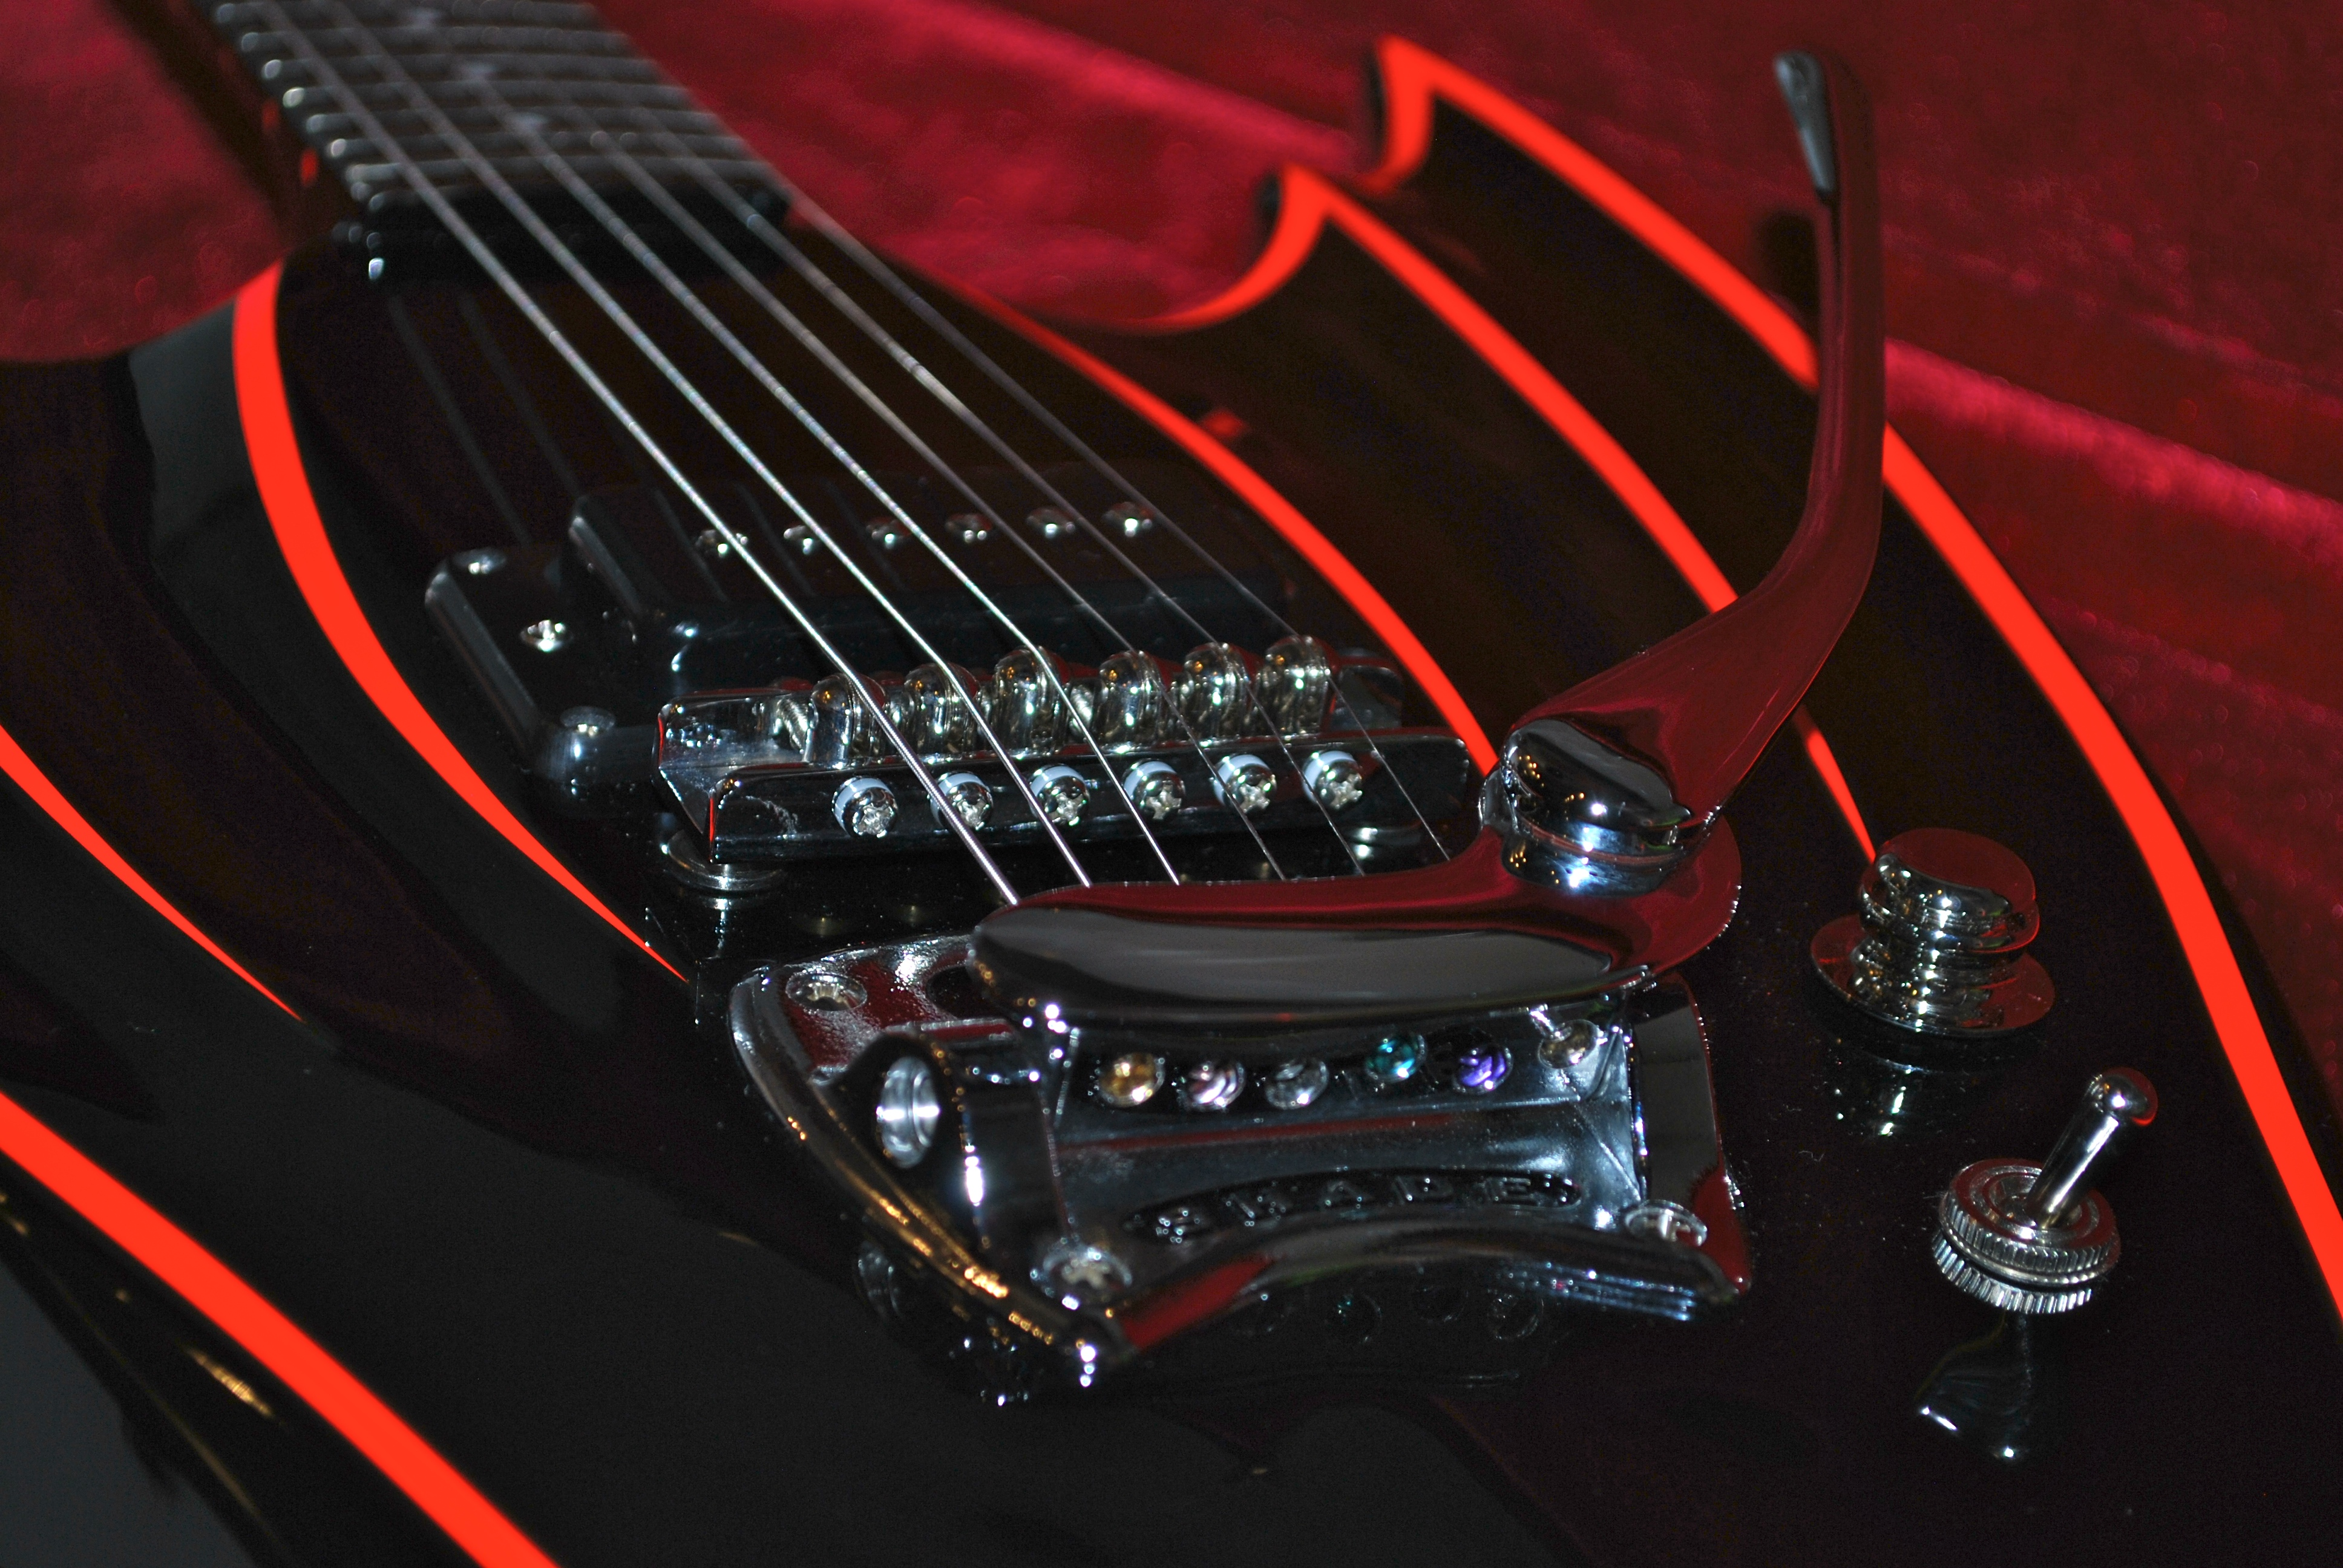 Wing-Bat by Hallmark Guitars